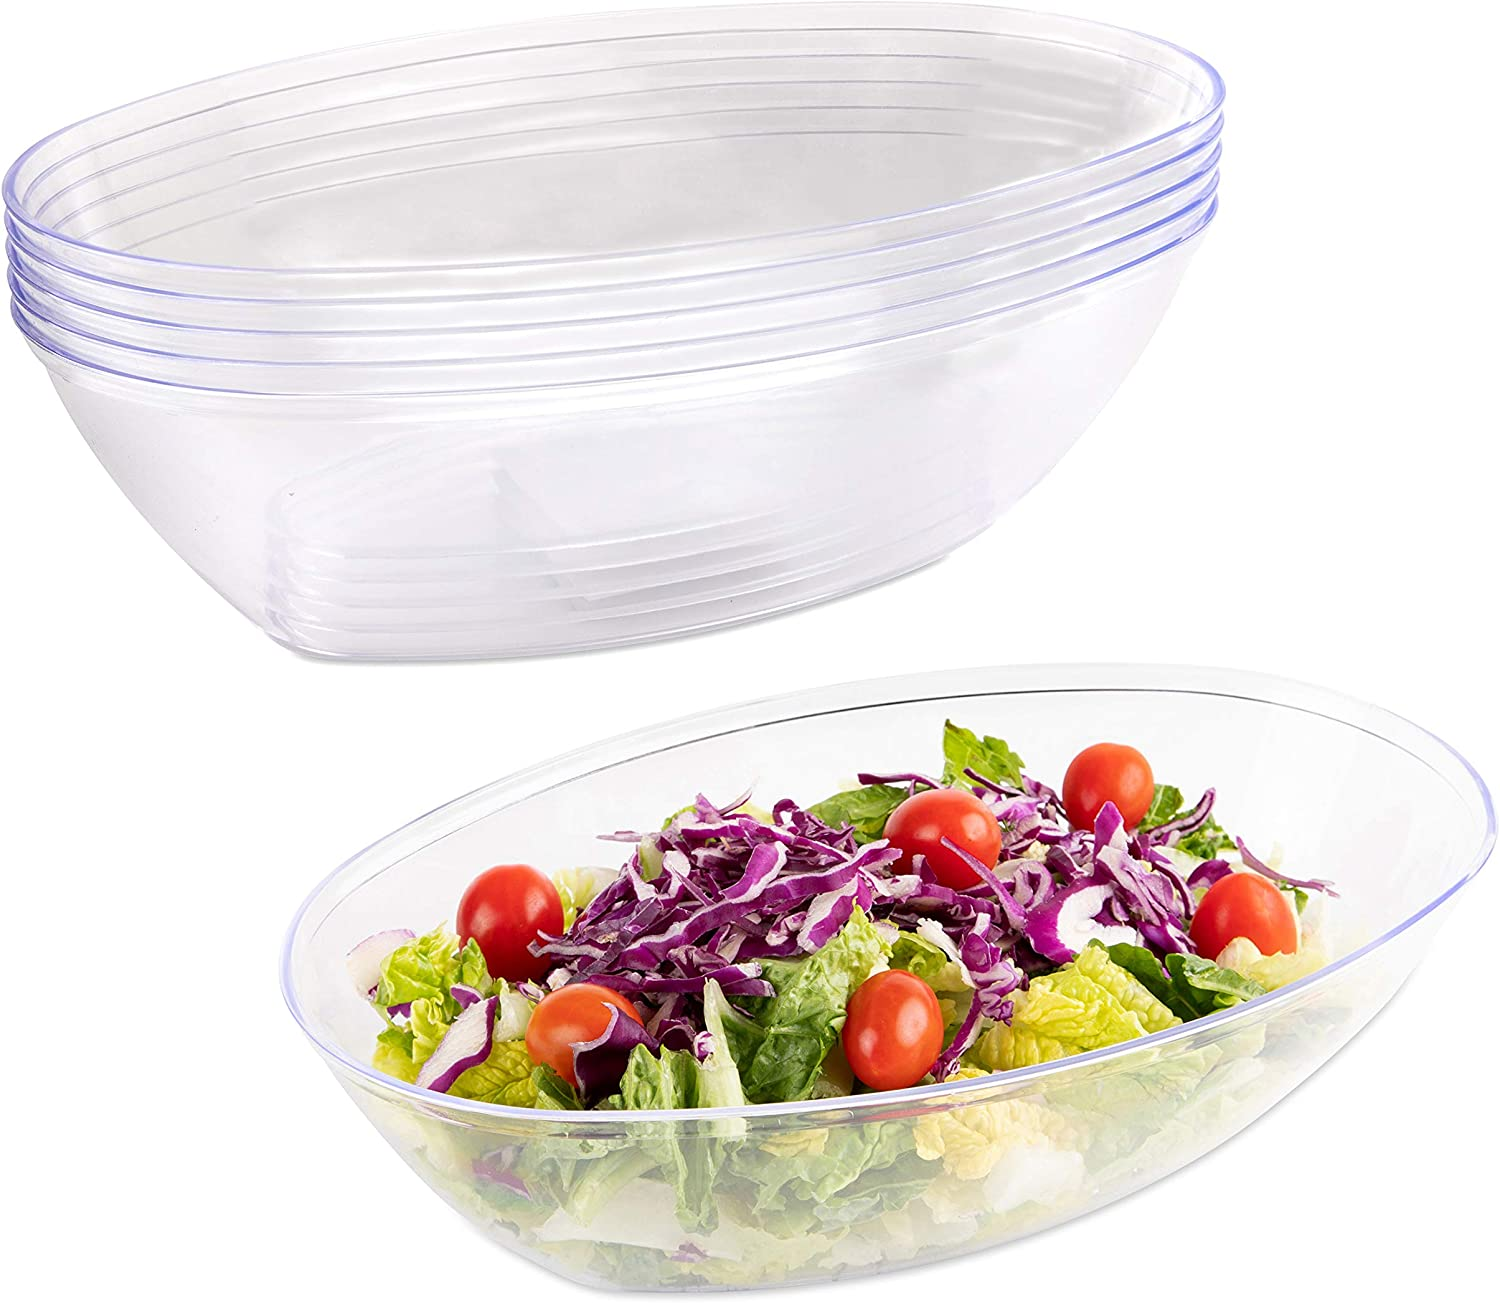 Impressive Creations Plastic Salad Bowl  80 Oz. (Pack of 5) – Heavyweight Disposable Clear Salad Bowl – Durable and Reusable Party Supply Bowl – Perfect Dinnerware